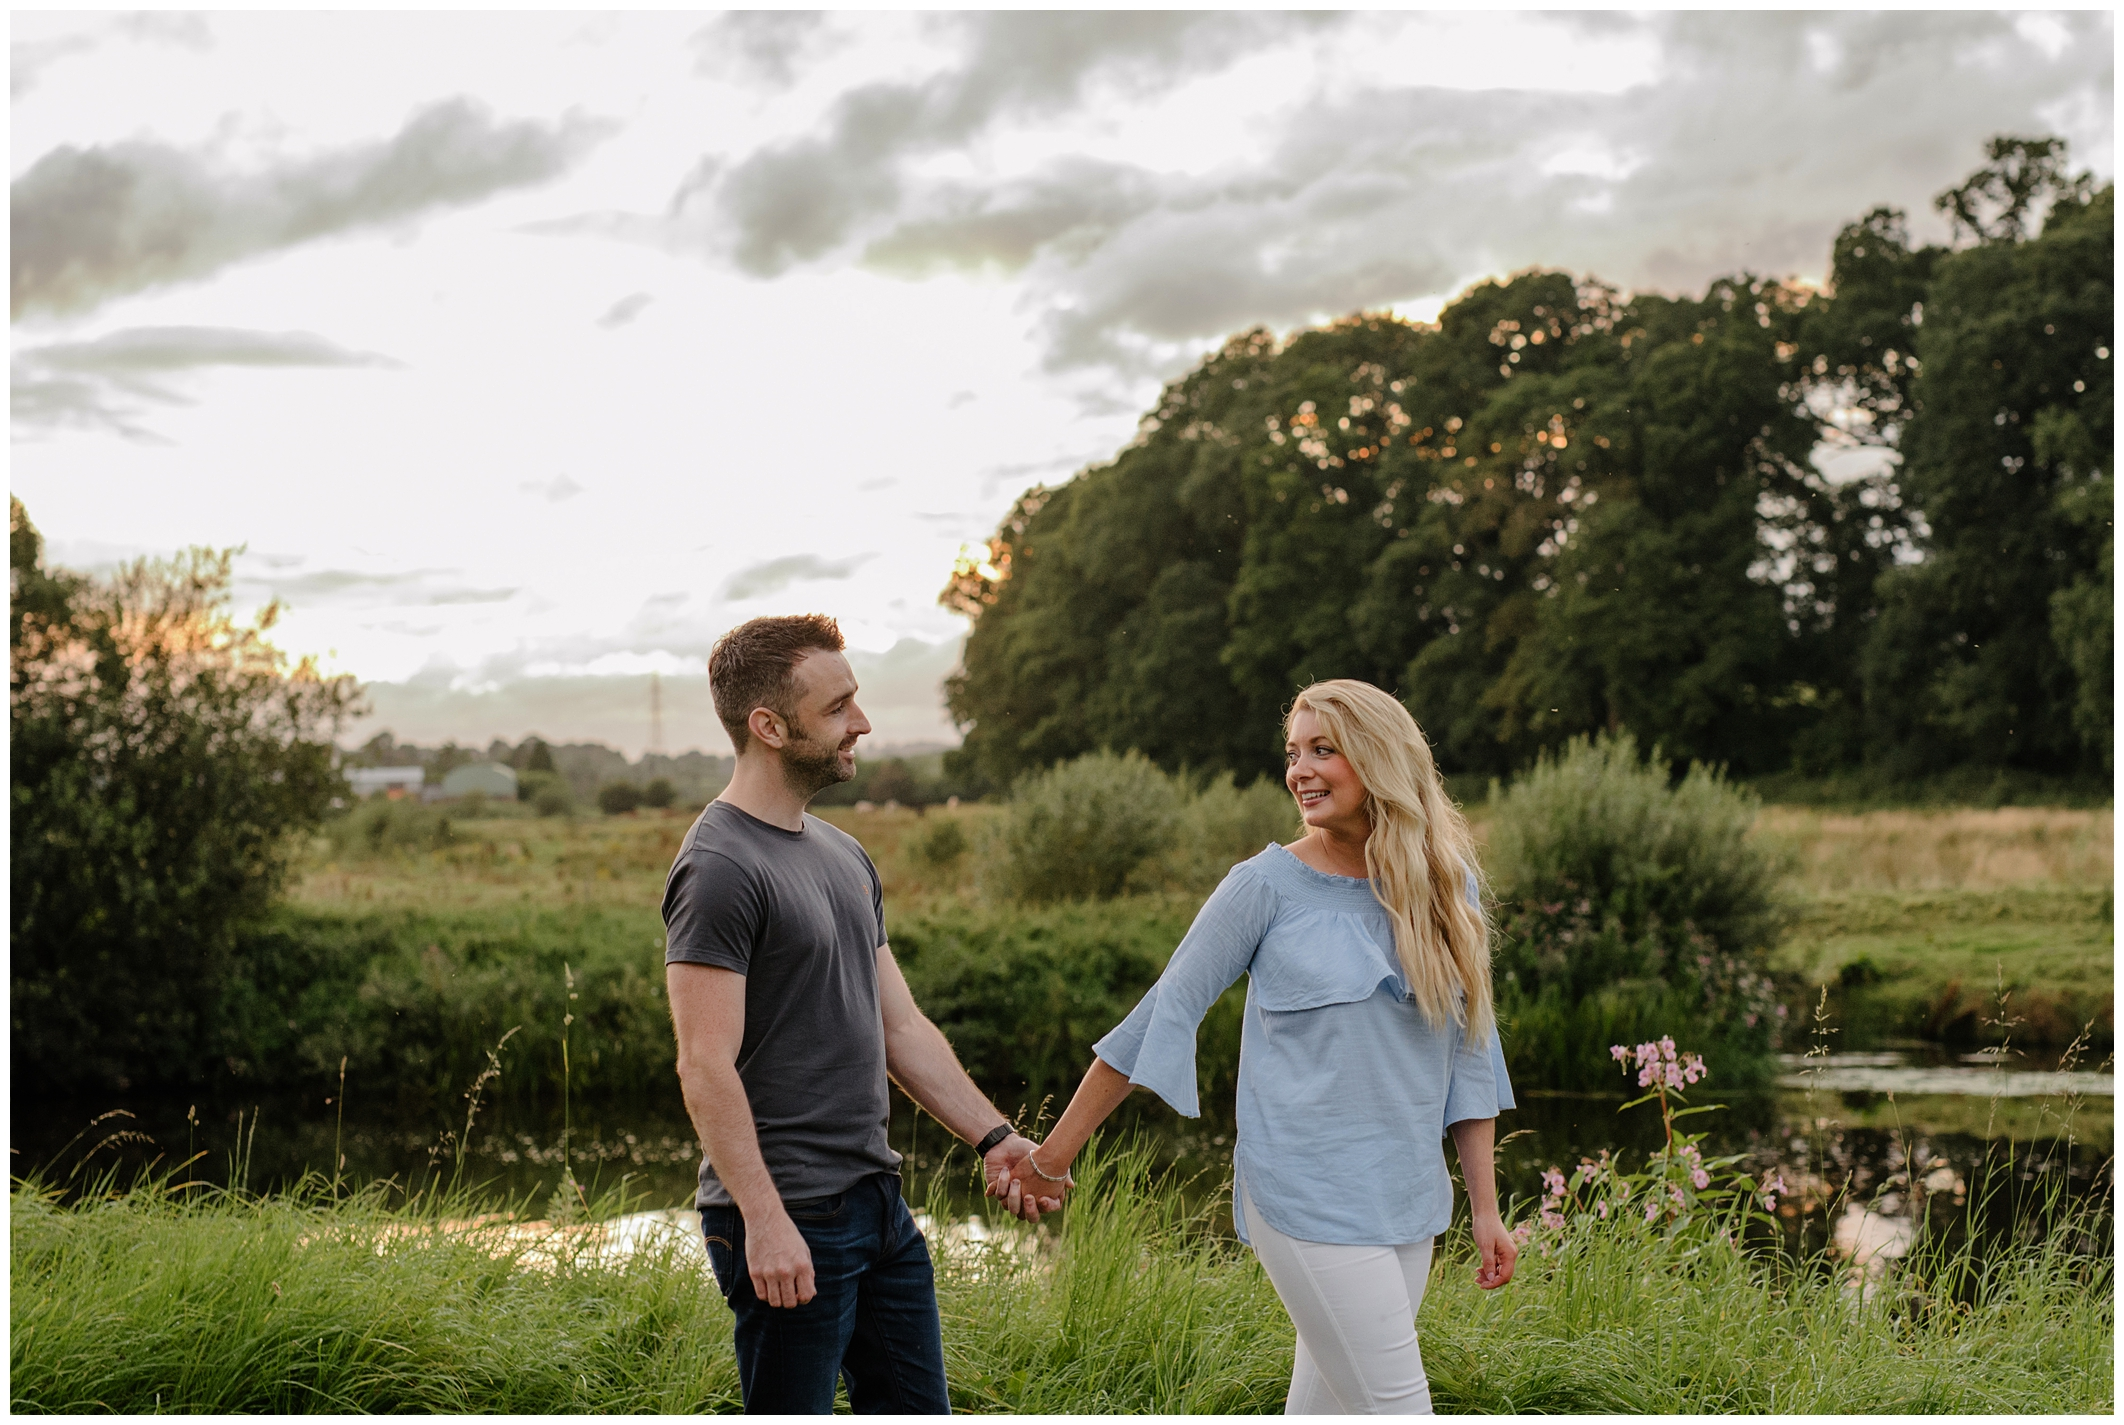 louise_keith_pre_wedding_armagh_jude_browne_photography_0016.jpg